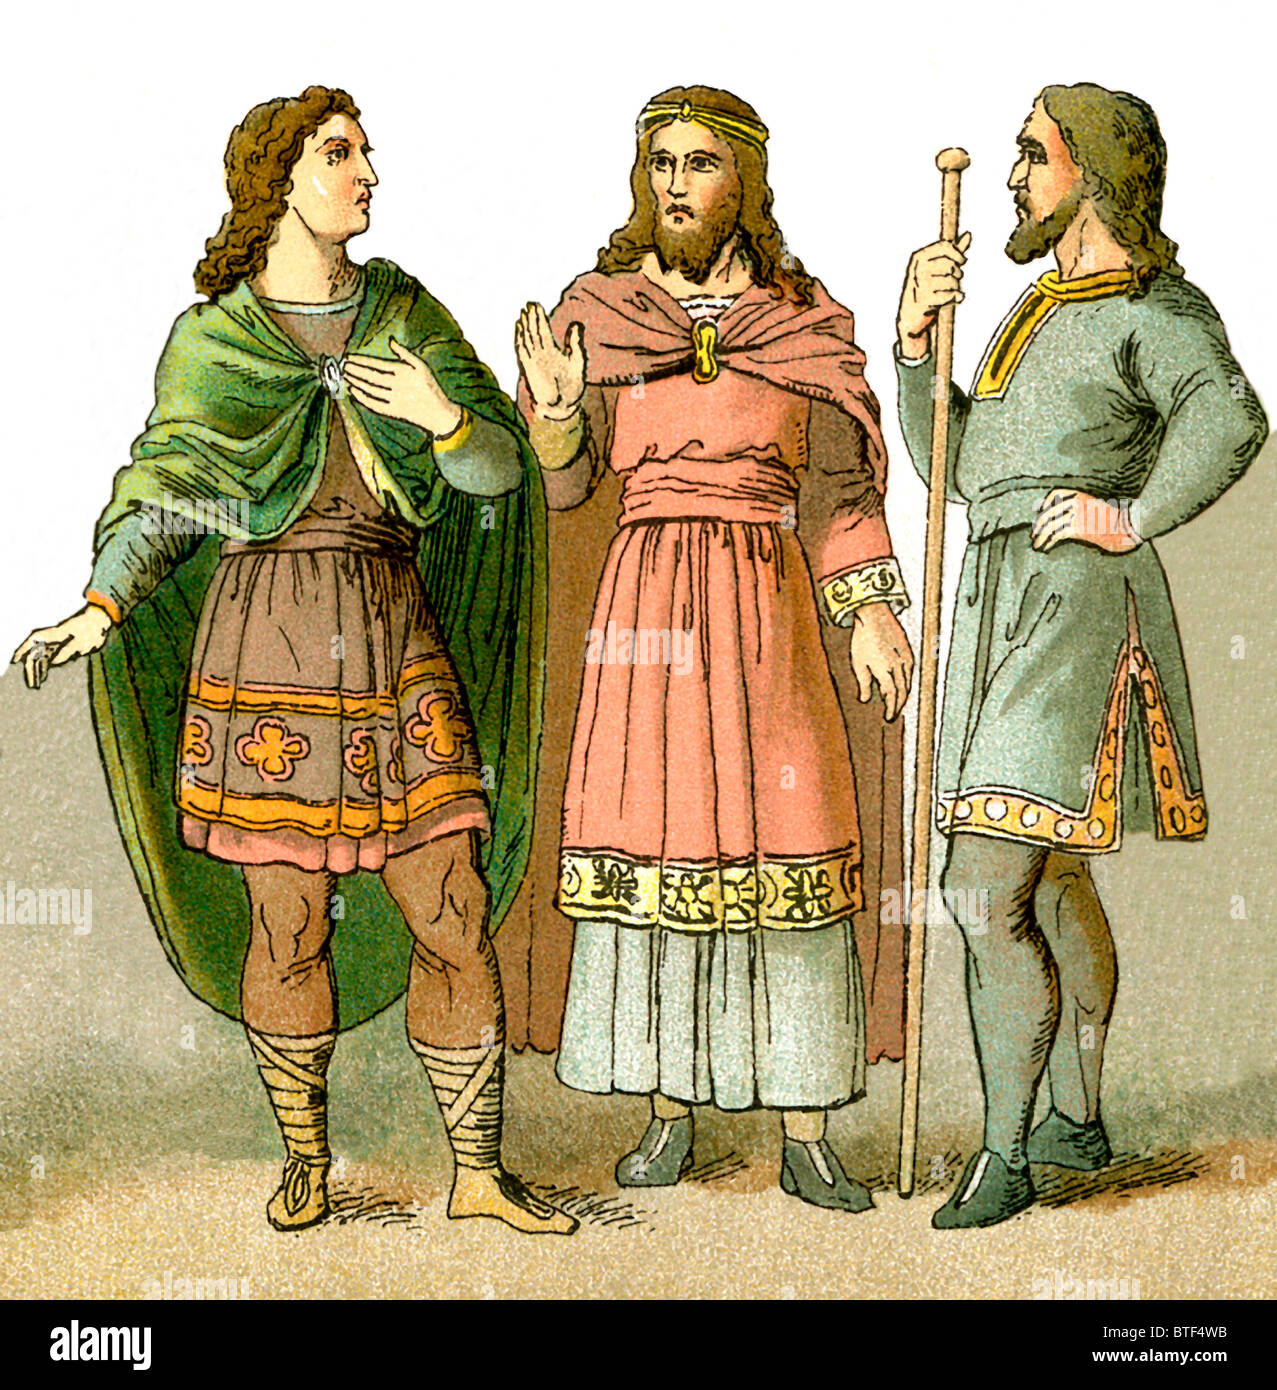 These Anglo-Saxon (Germanic-speaking people who settled in England)  figures represent three men of rank. - Stock Image